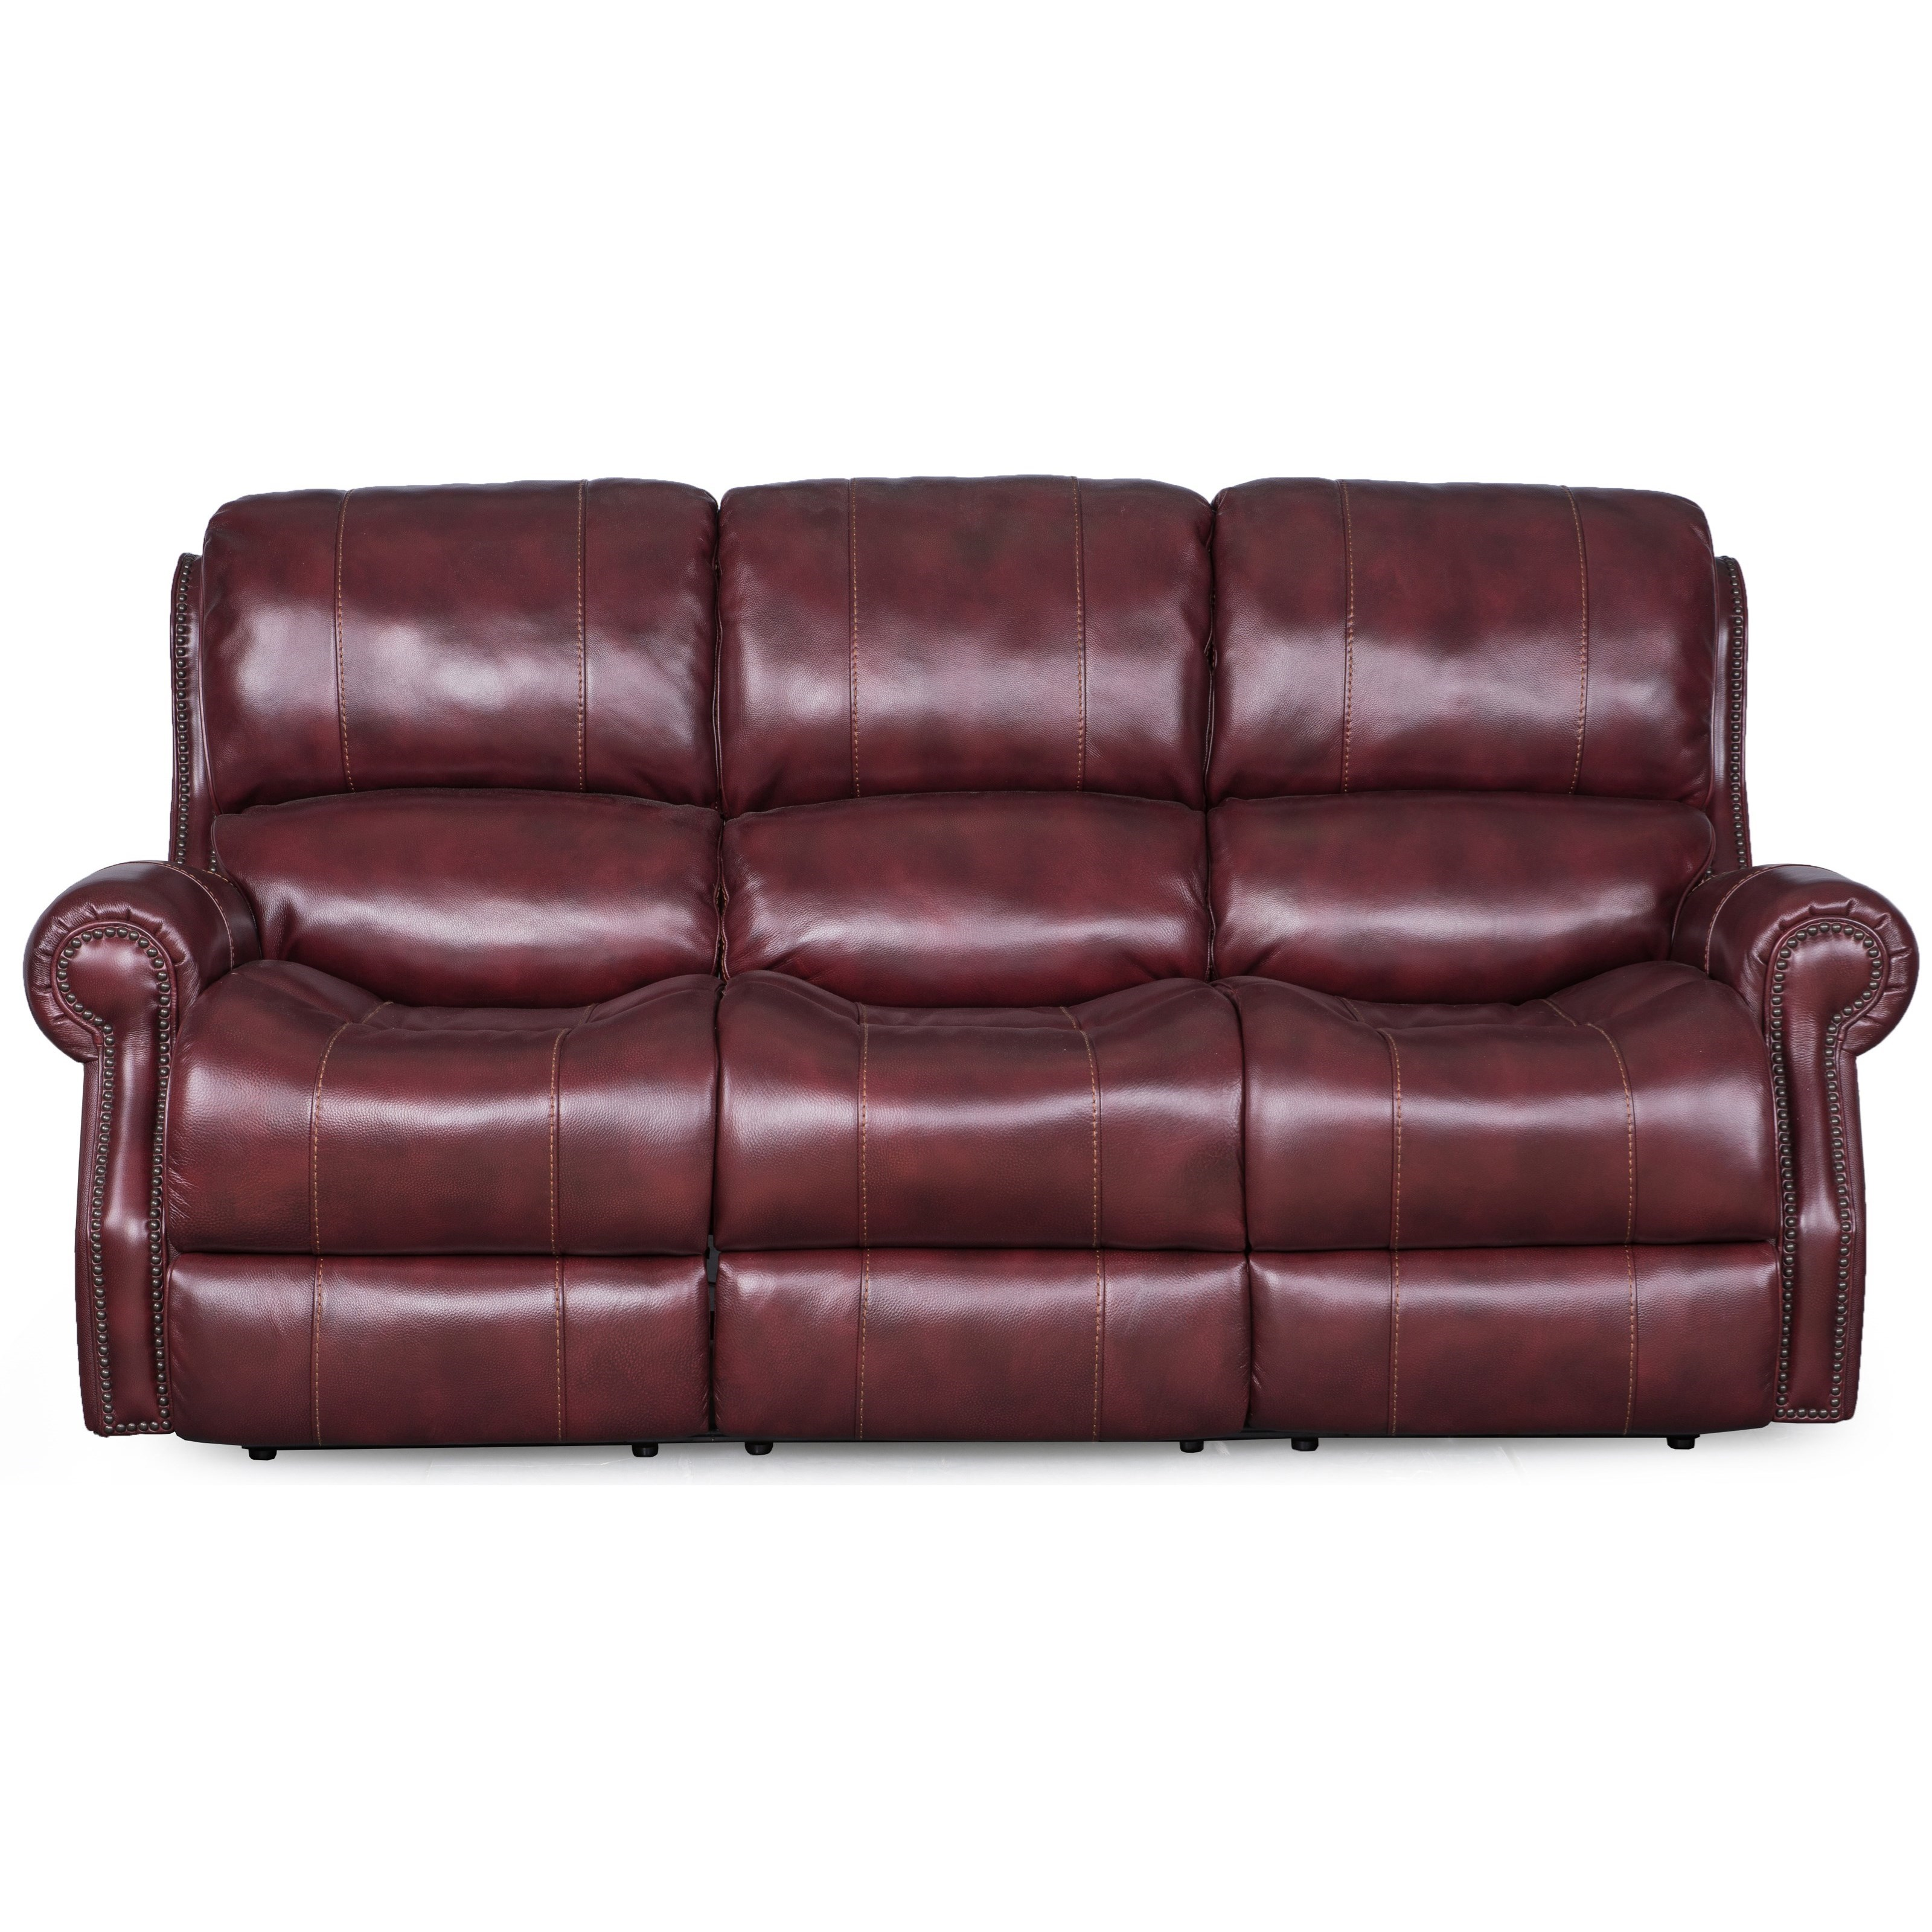 Synergy Home Furnishings Manor Power Sofa - Item Number: 1346-58PWR-BriarwoodMerlot